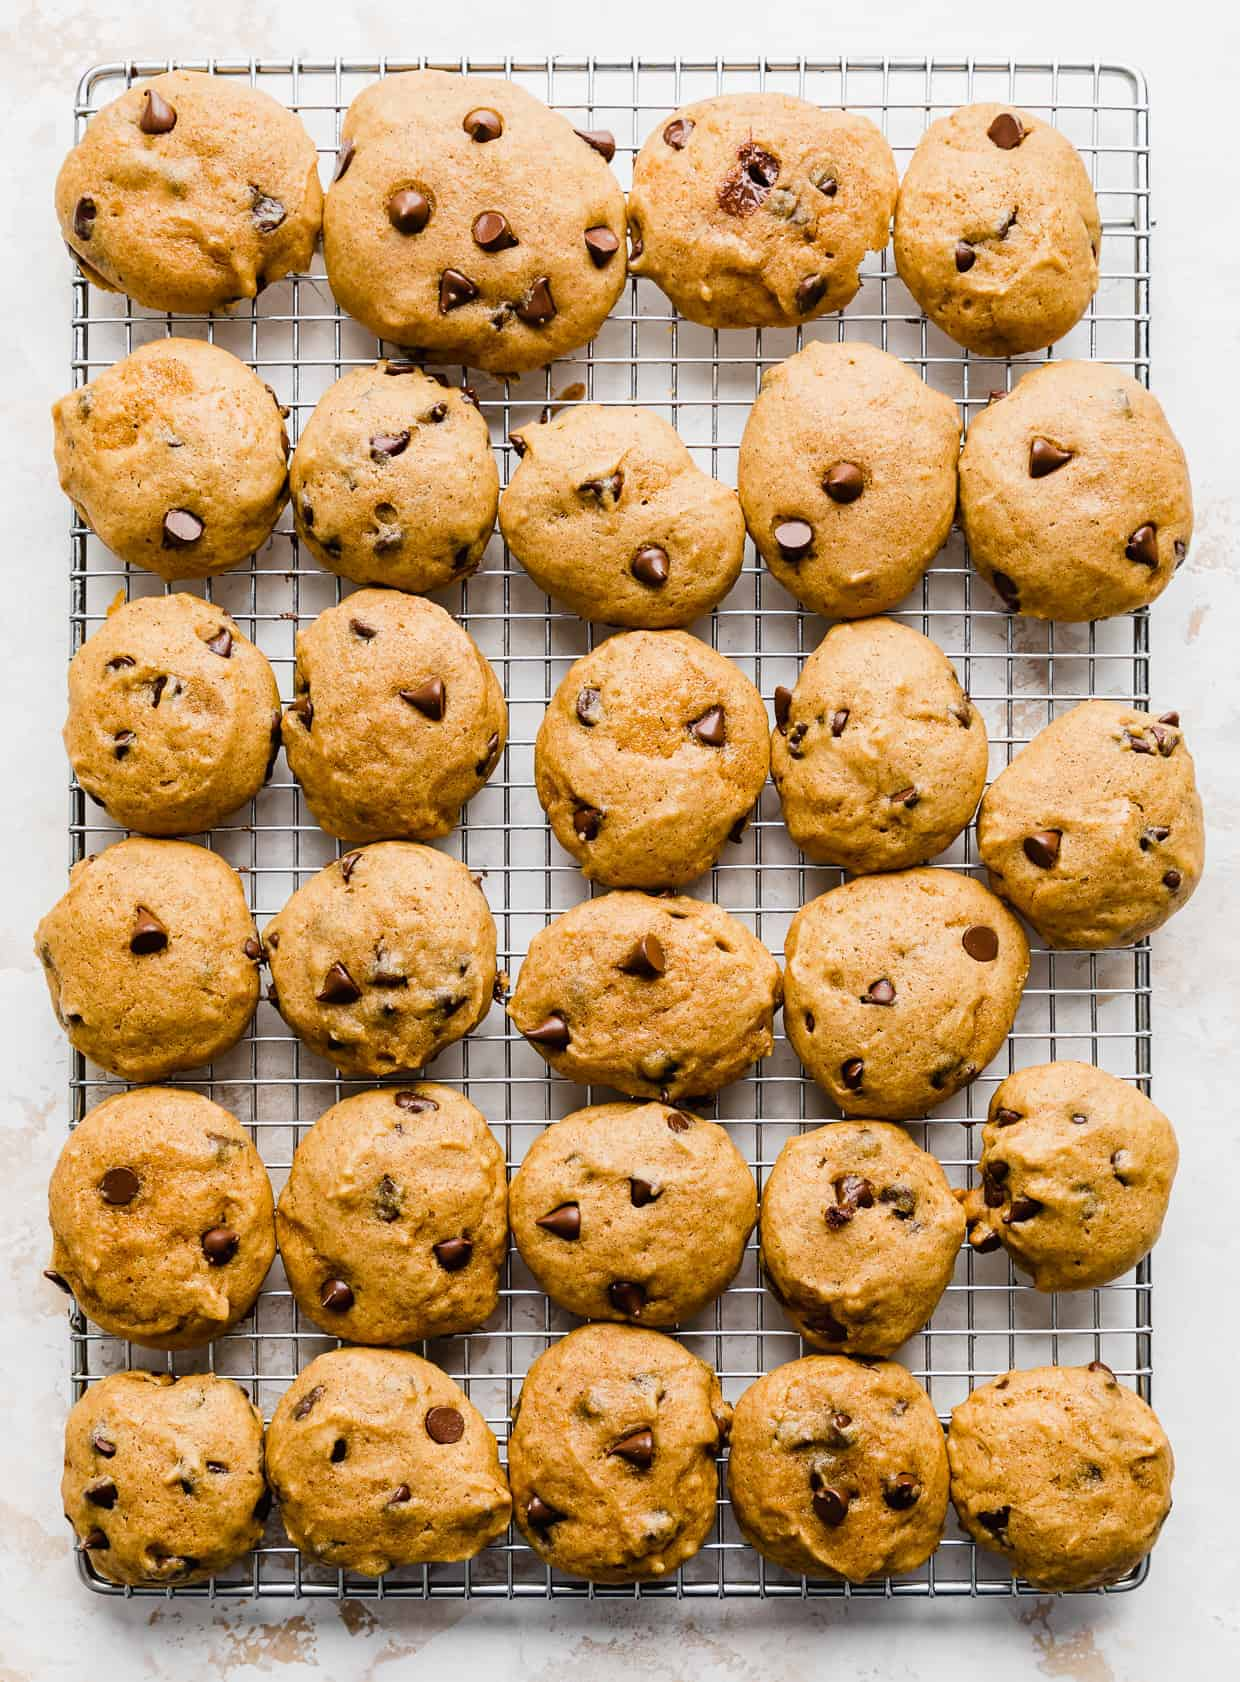 Pumpkin Chocolate Chip Cookies on a wire rack on a white background.